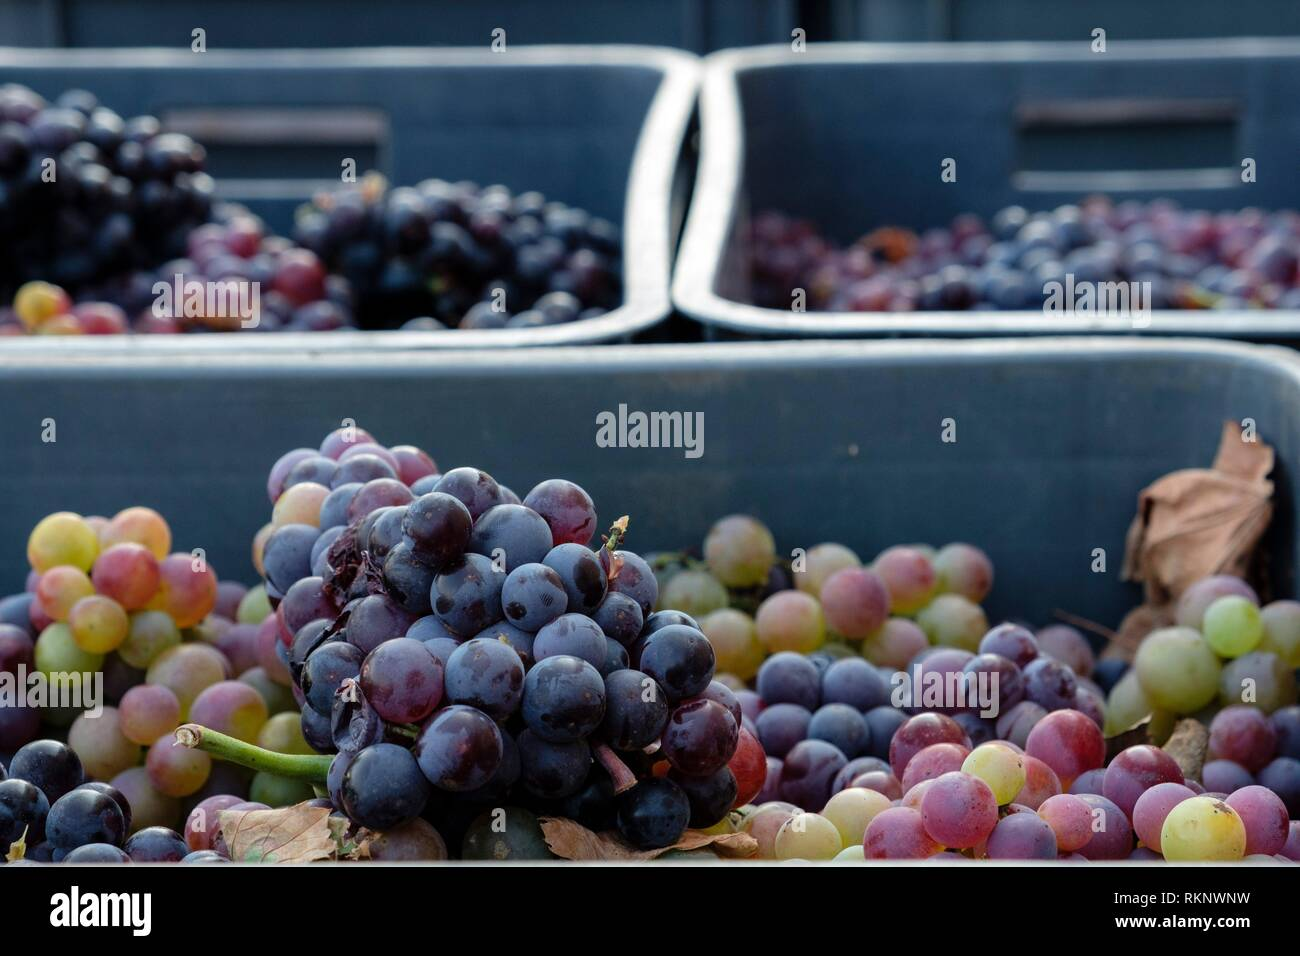 Callet grapes, Celler Mesquida-Mora, Porreres, Mallorca, Balearic islands, Spain. - Stock Image